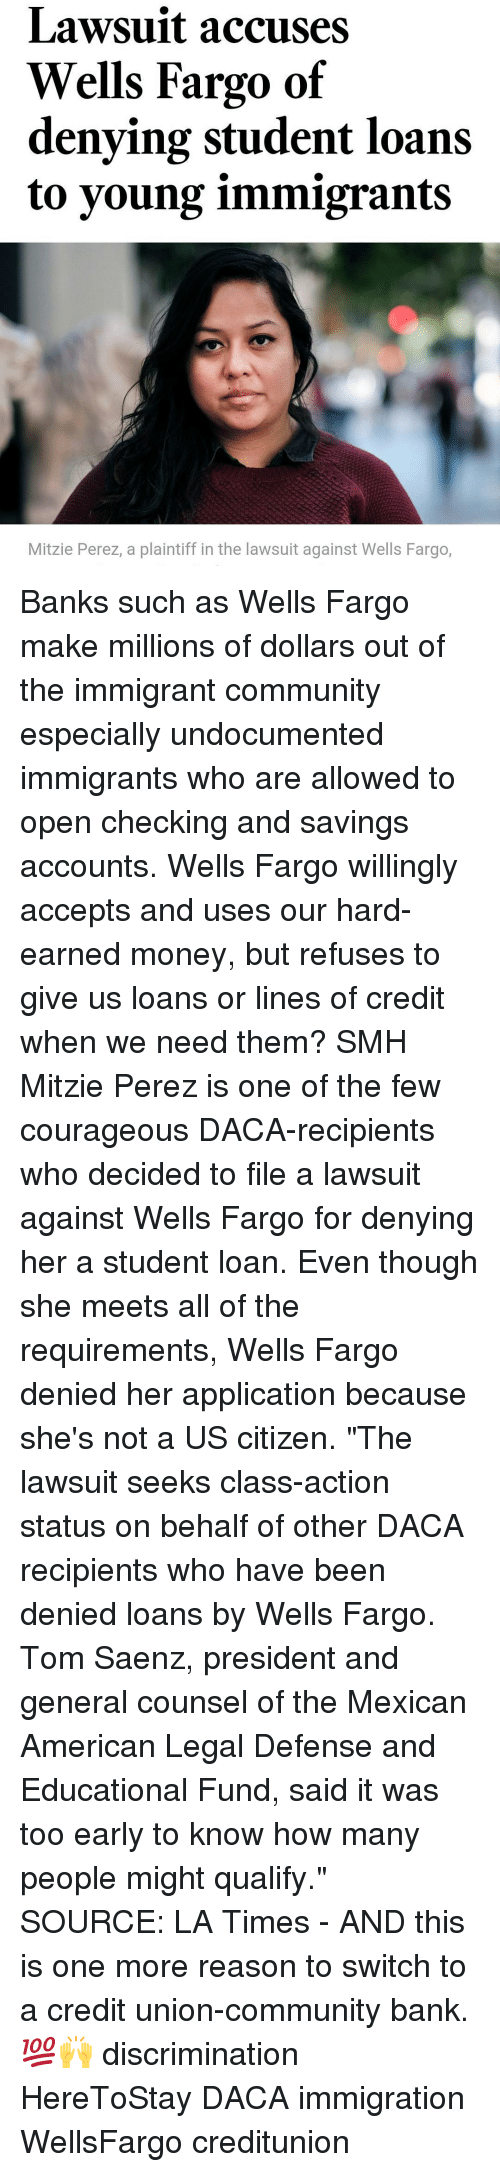 "Discriminize: Lawsuit accuses  Wells Fargo of  denying student loans  to young immigrants  Mitzie Perez, a plaintiff in the lawsuit against Wells Fargo, Banks such as Wells Fargo make millions of dollars out of the immigrant community especially undocumented immigrants who are allowed to open checking and savings accounts. Wells Fargo willingly accepts and uses our hard-earned money, but refuses to give us loans or lines of credit when we need them? SMH Mitzie Perez is one of the few courageous DACA-recipients who decided to file a lawsuit against Wells Fargo for denying her a student loan. Even though she meets all of the requirements, Wells Fargo denied her application because she's not a US citizen. ""The lawsuit seeks class-action status on behalf of other DACA recipients who have been denied loans by Wells Fargo. Tom Saenz, president and general counsel of the Mexican American Legal Defense and Educational Fund, said it was too early to know how many people might qualify."" SOURCE: LA Times - AND this is one more reason to switch to a credit union-community bank. 💯🙌 discrimination HereToStay DACA immigration WellsFargo creditunion"